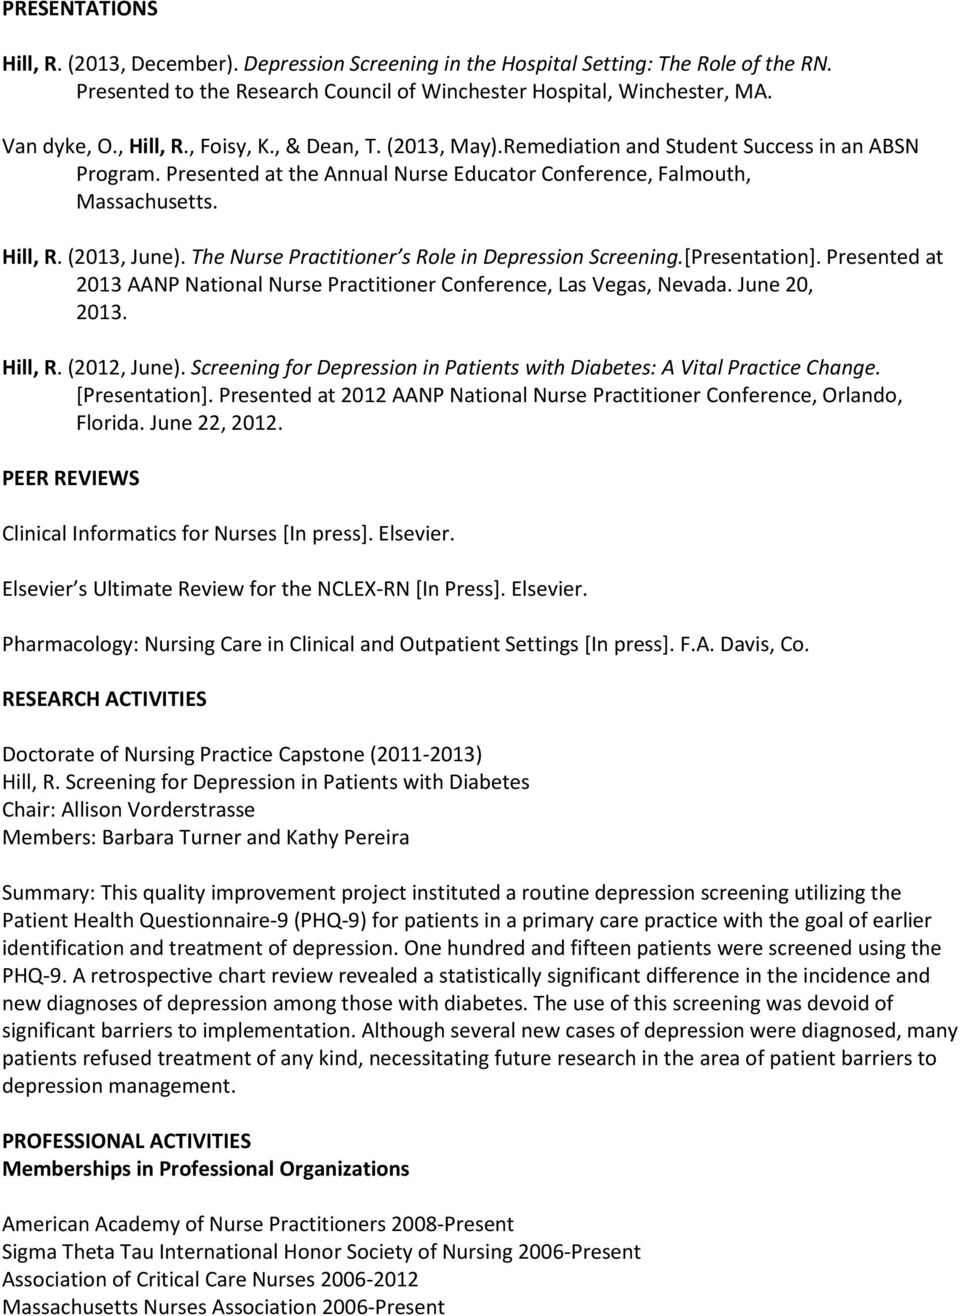 The Nurse Practitioner s Role in Depression Screening.[Presentation]. Presented at 2013 AANP National Nurse Practitioner Conference, Las Vegas, Nevada. June 20, 2013. Hill, R. (, June).